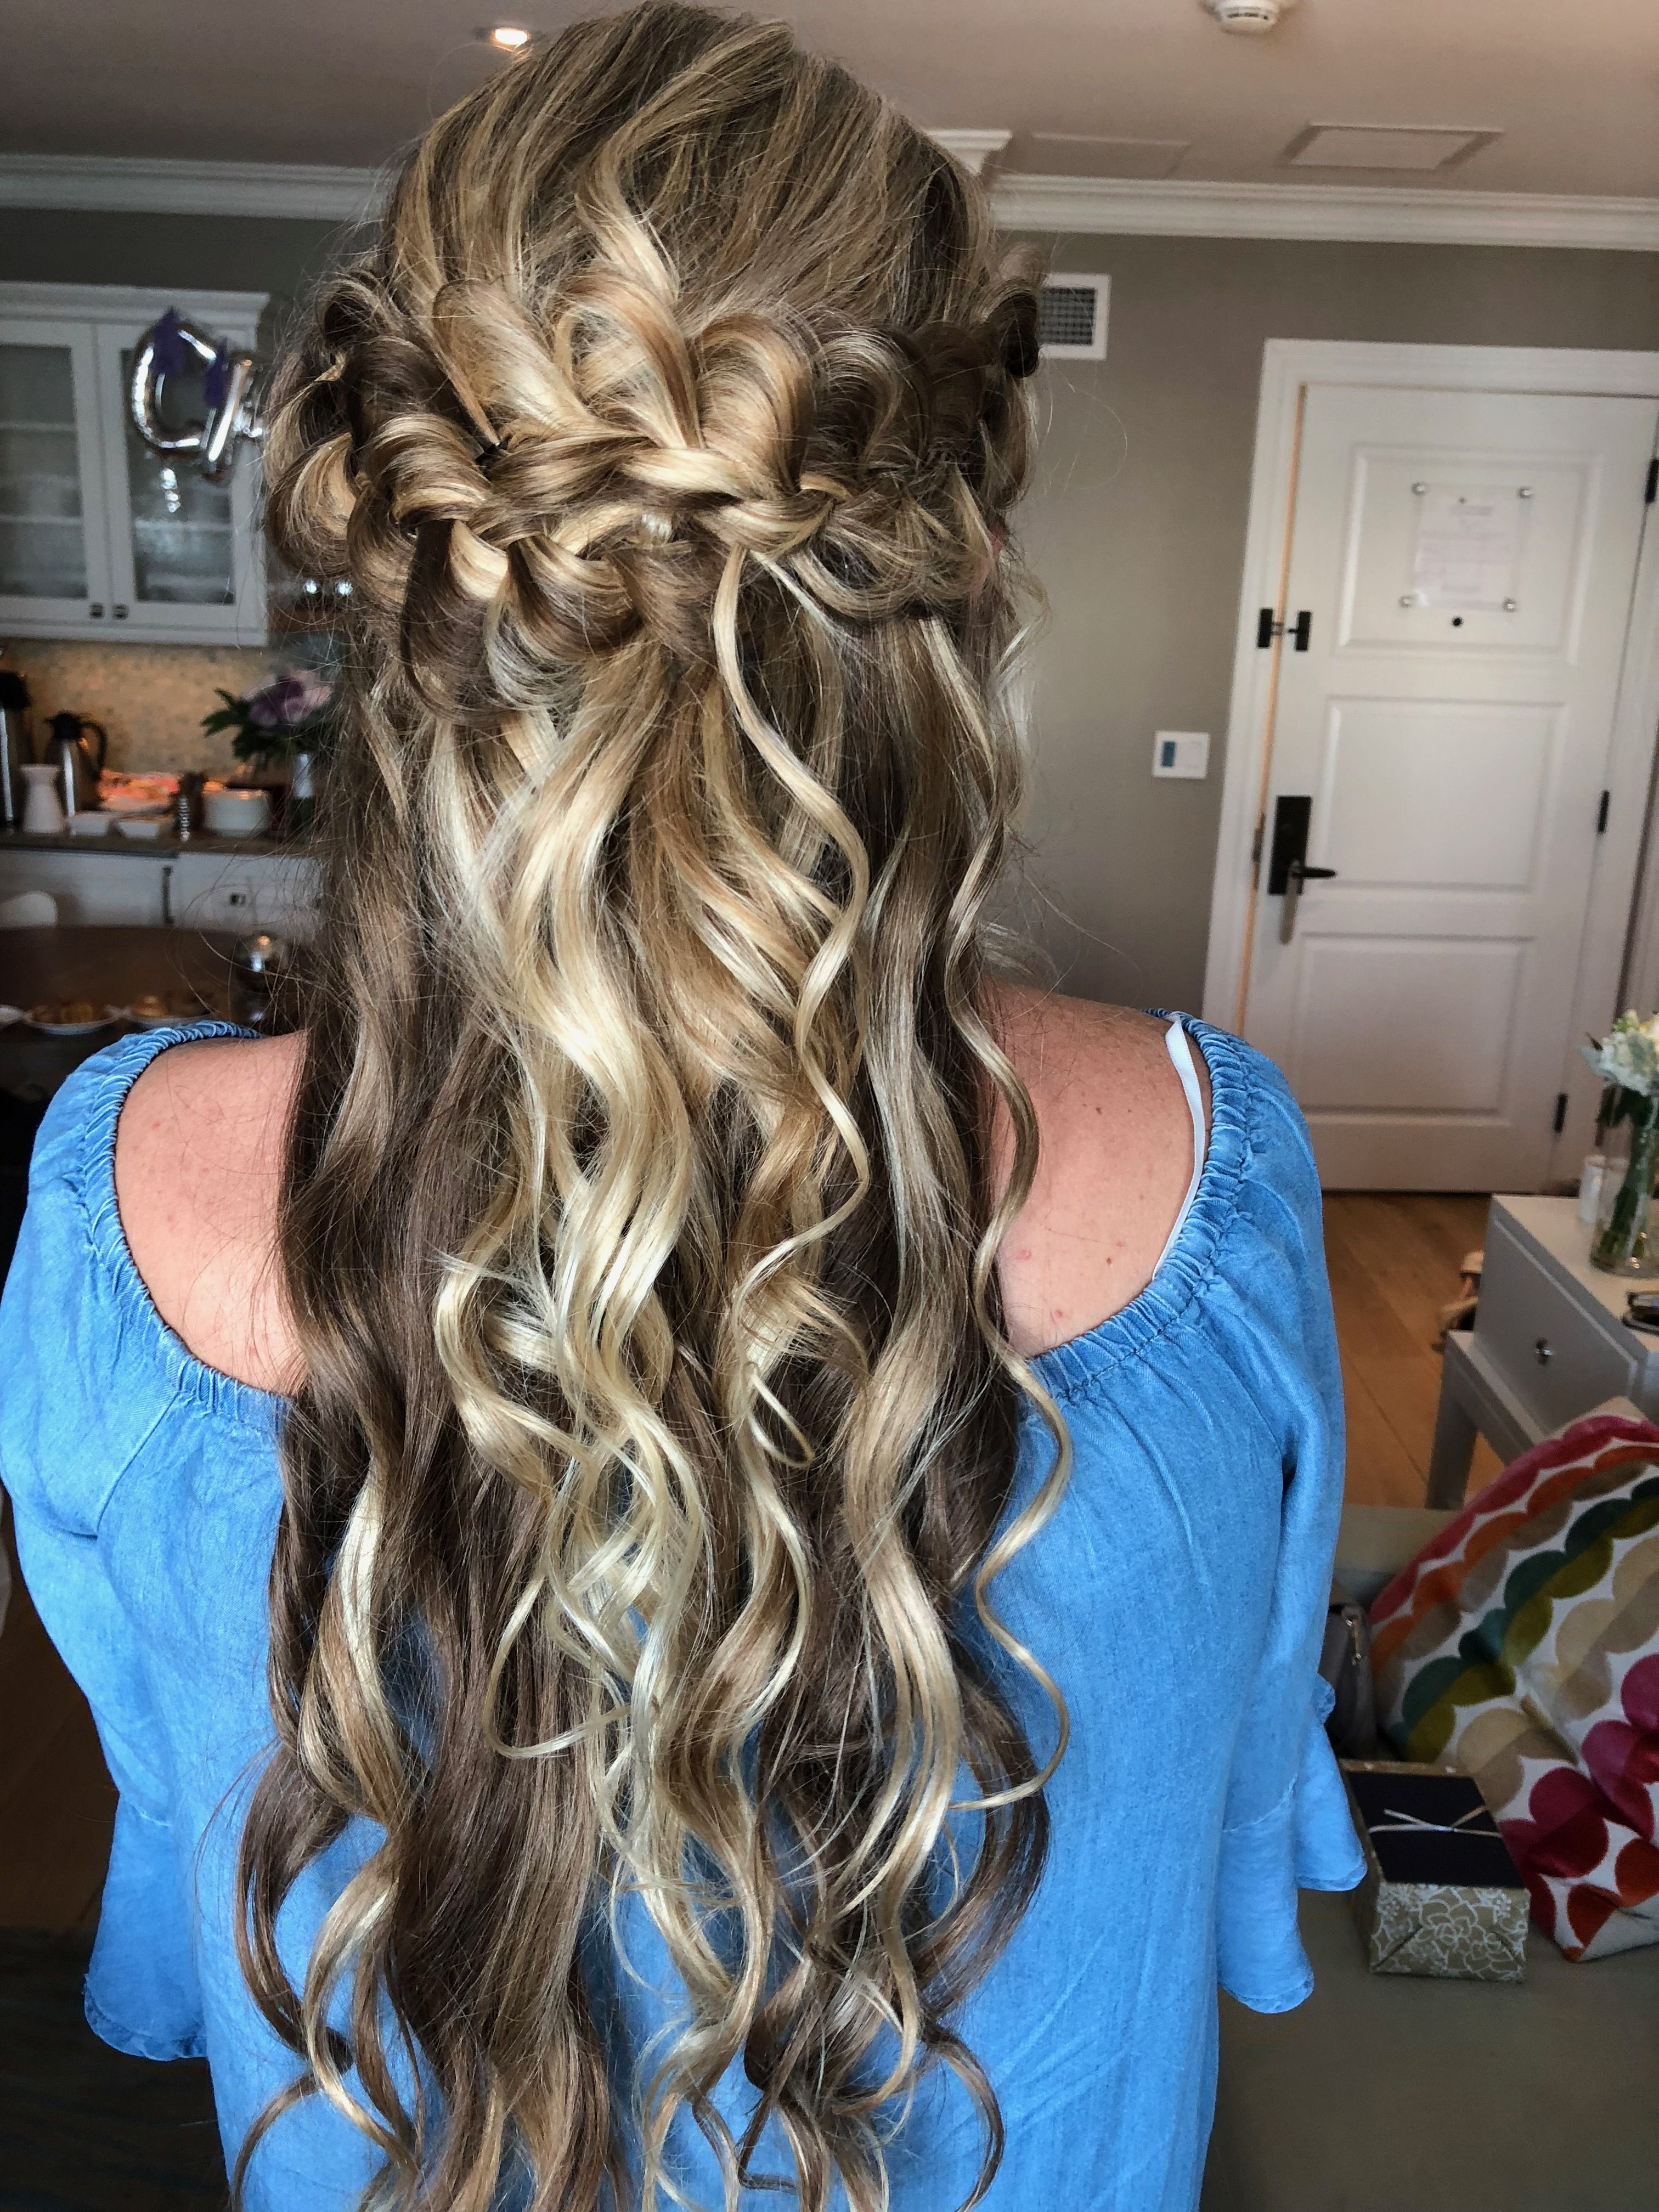 Pin by Daneene Jensen & Assoc. Hair a on Our Wedding Works